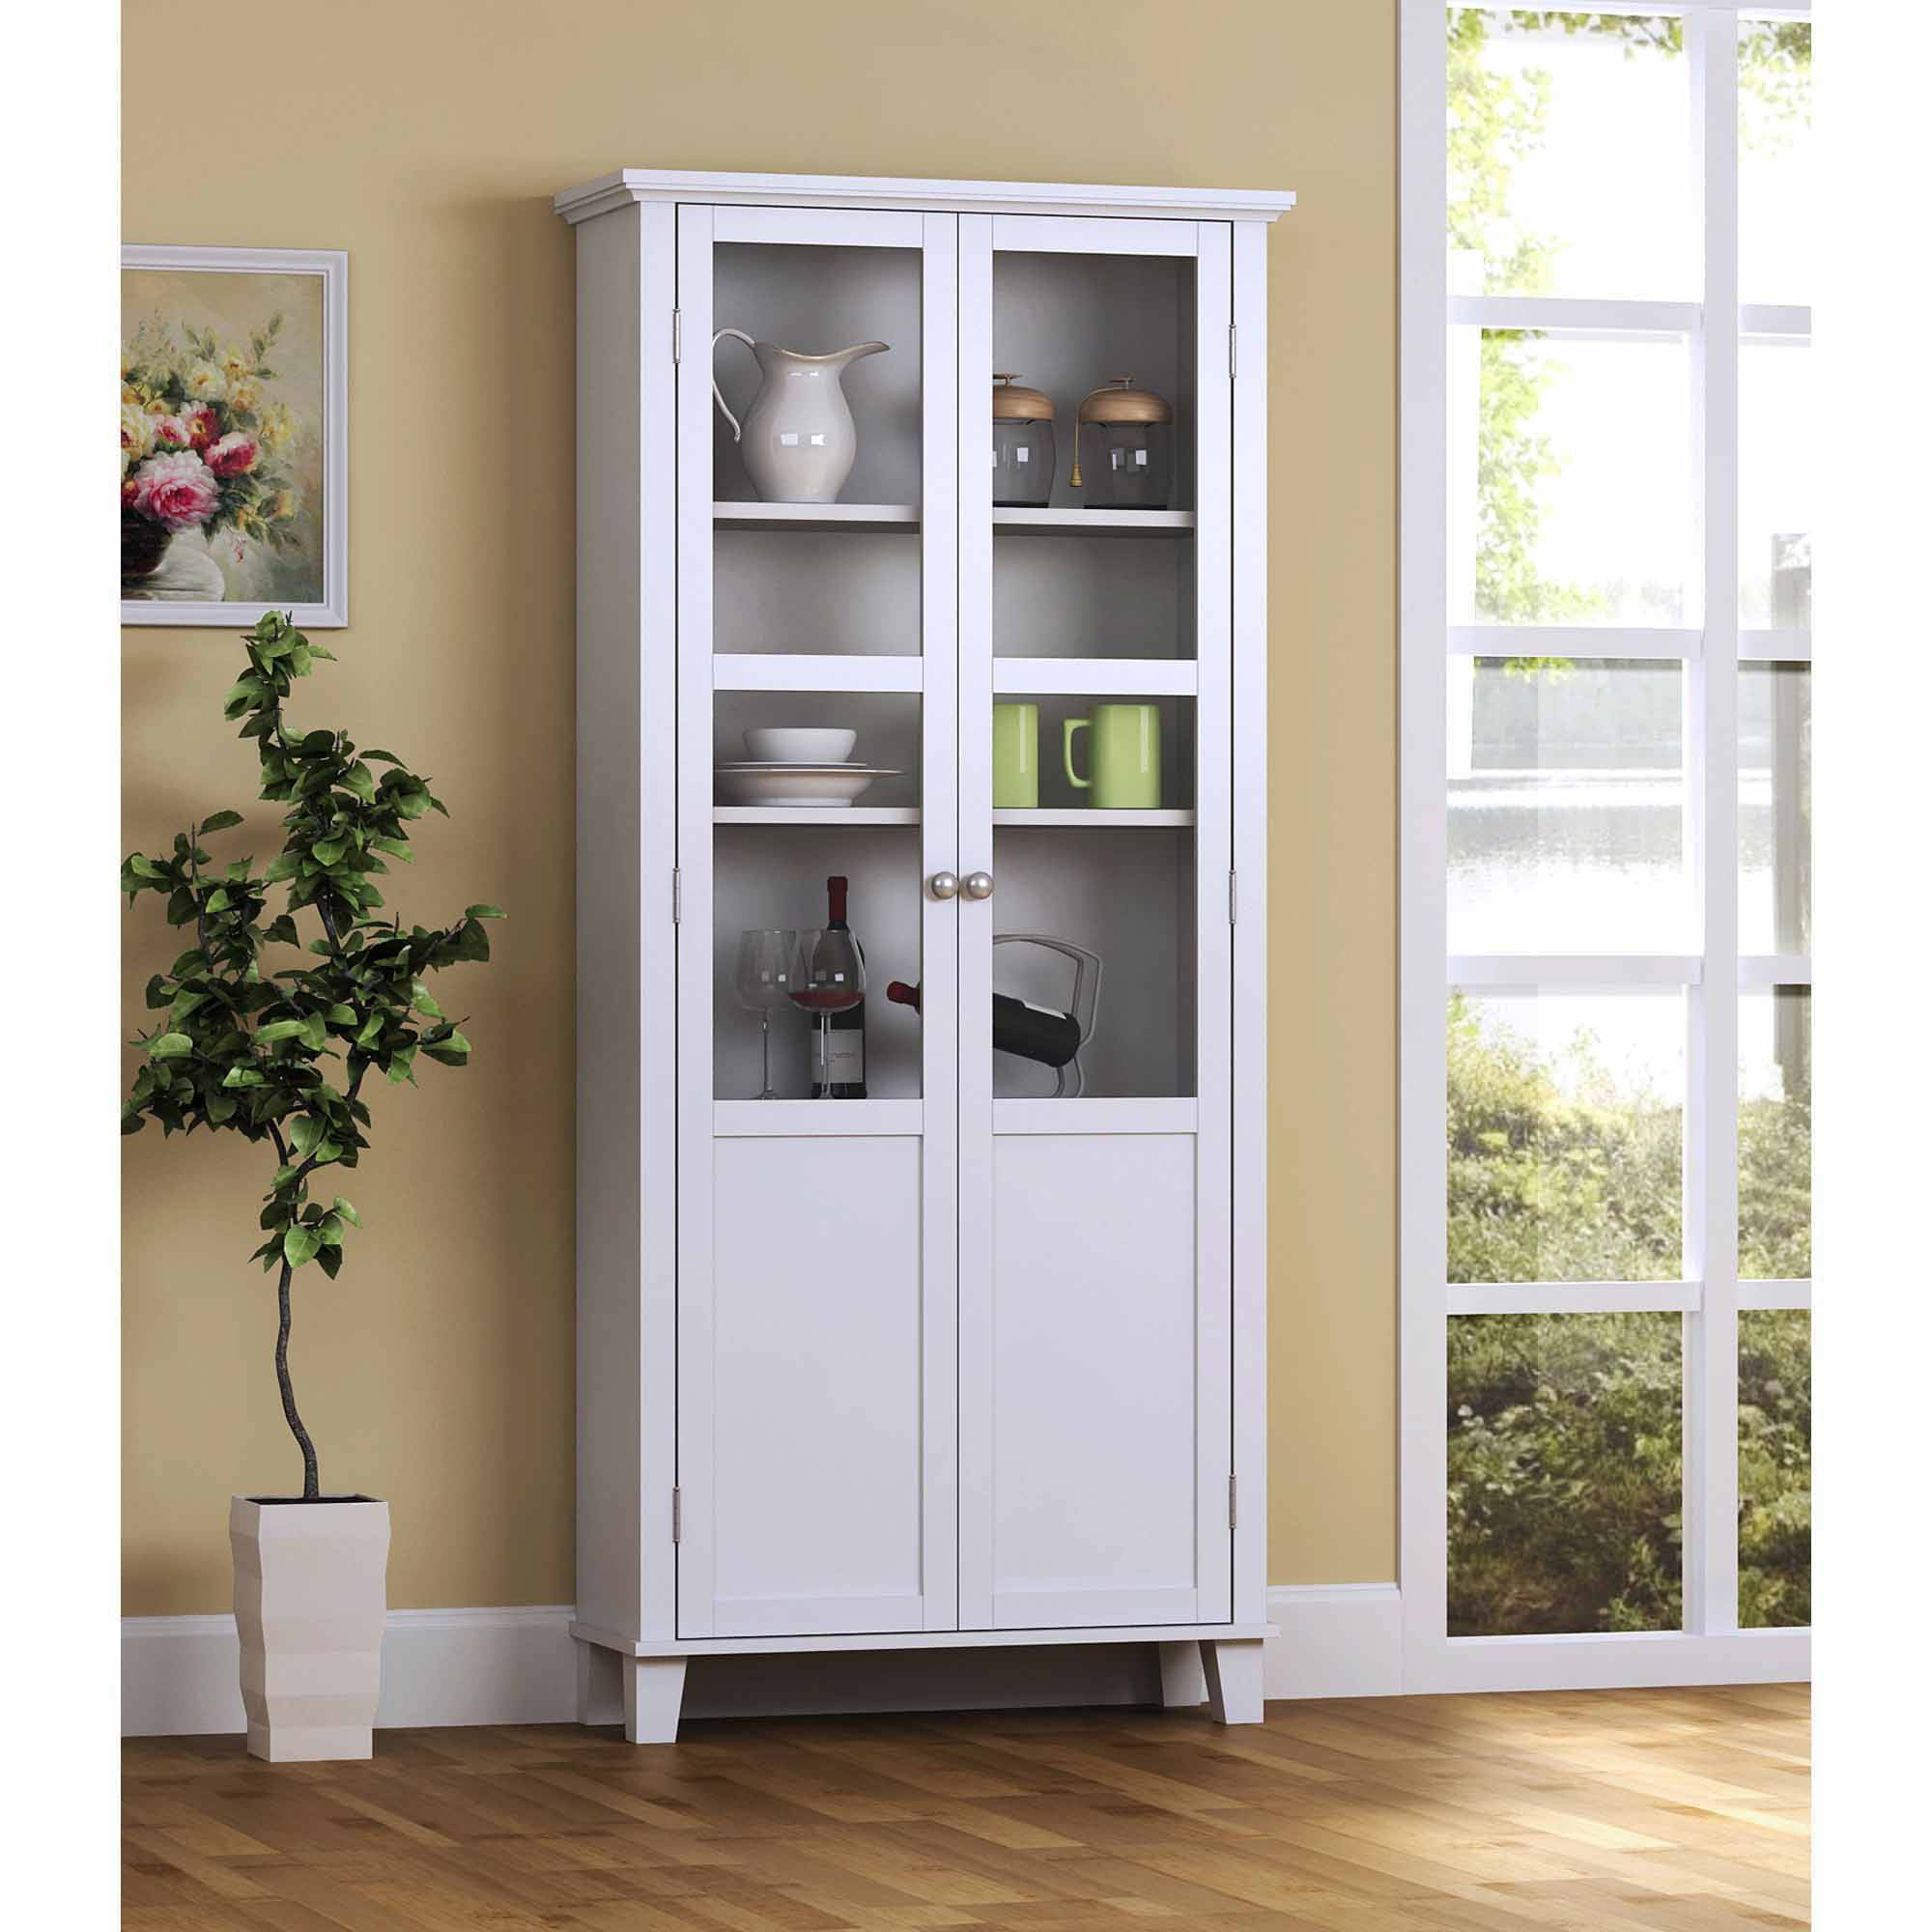 Poppy Display Cabinet with Glass Door Walmart